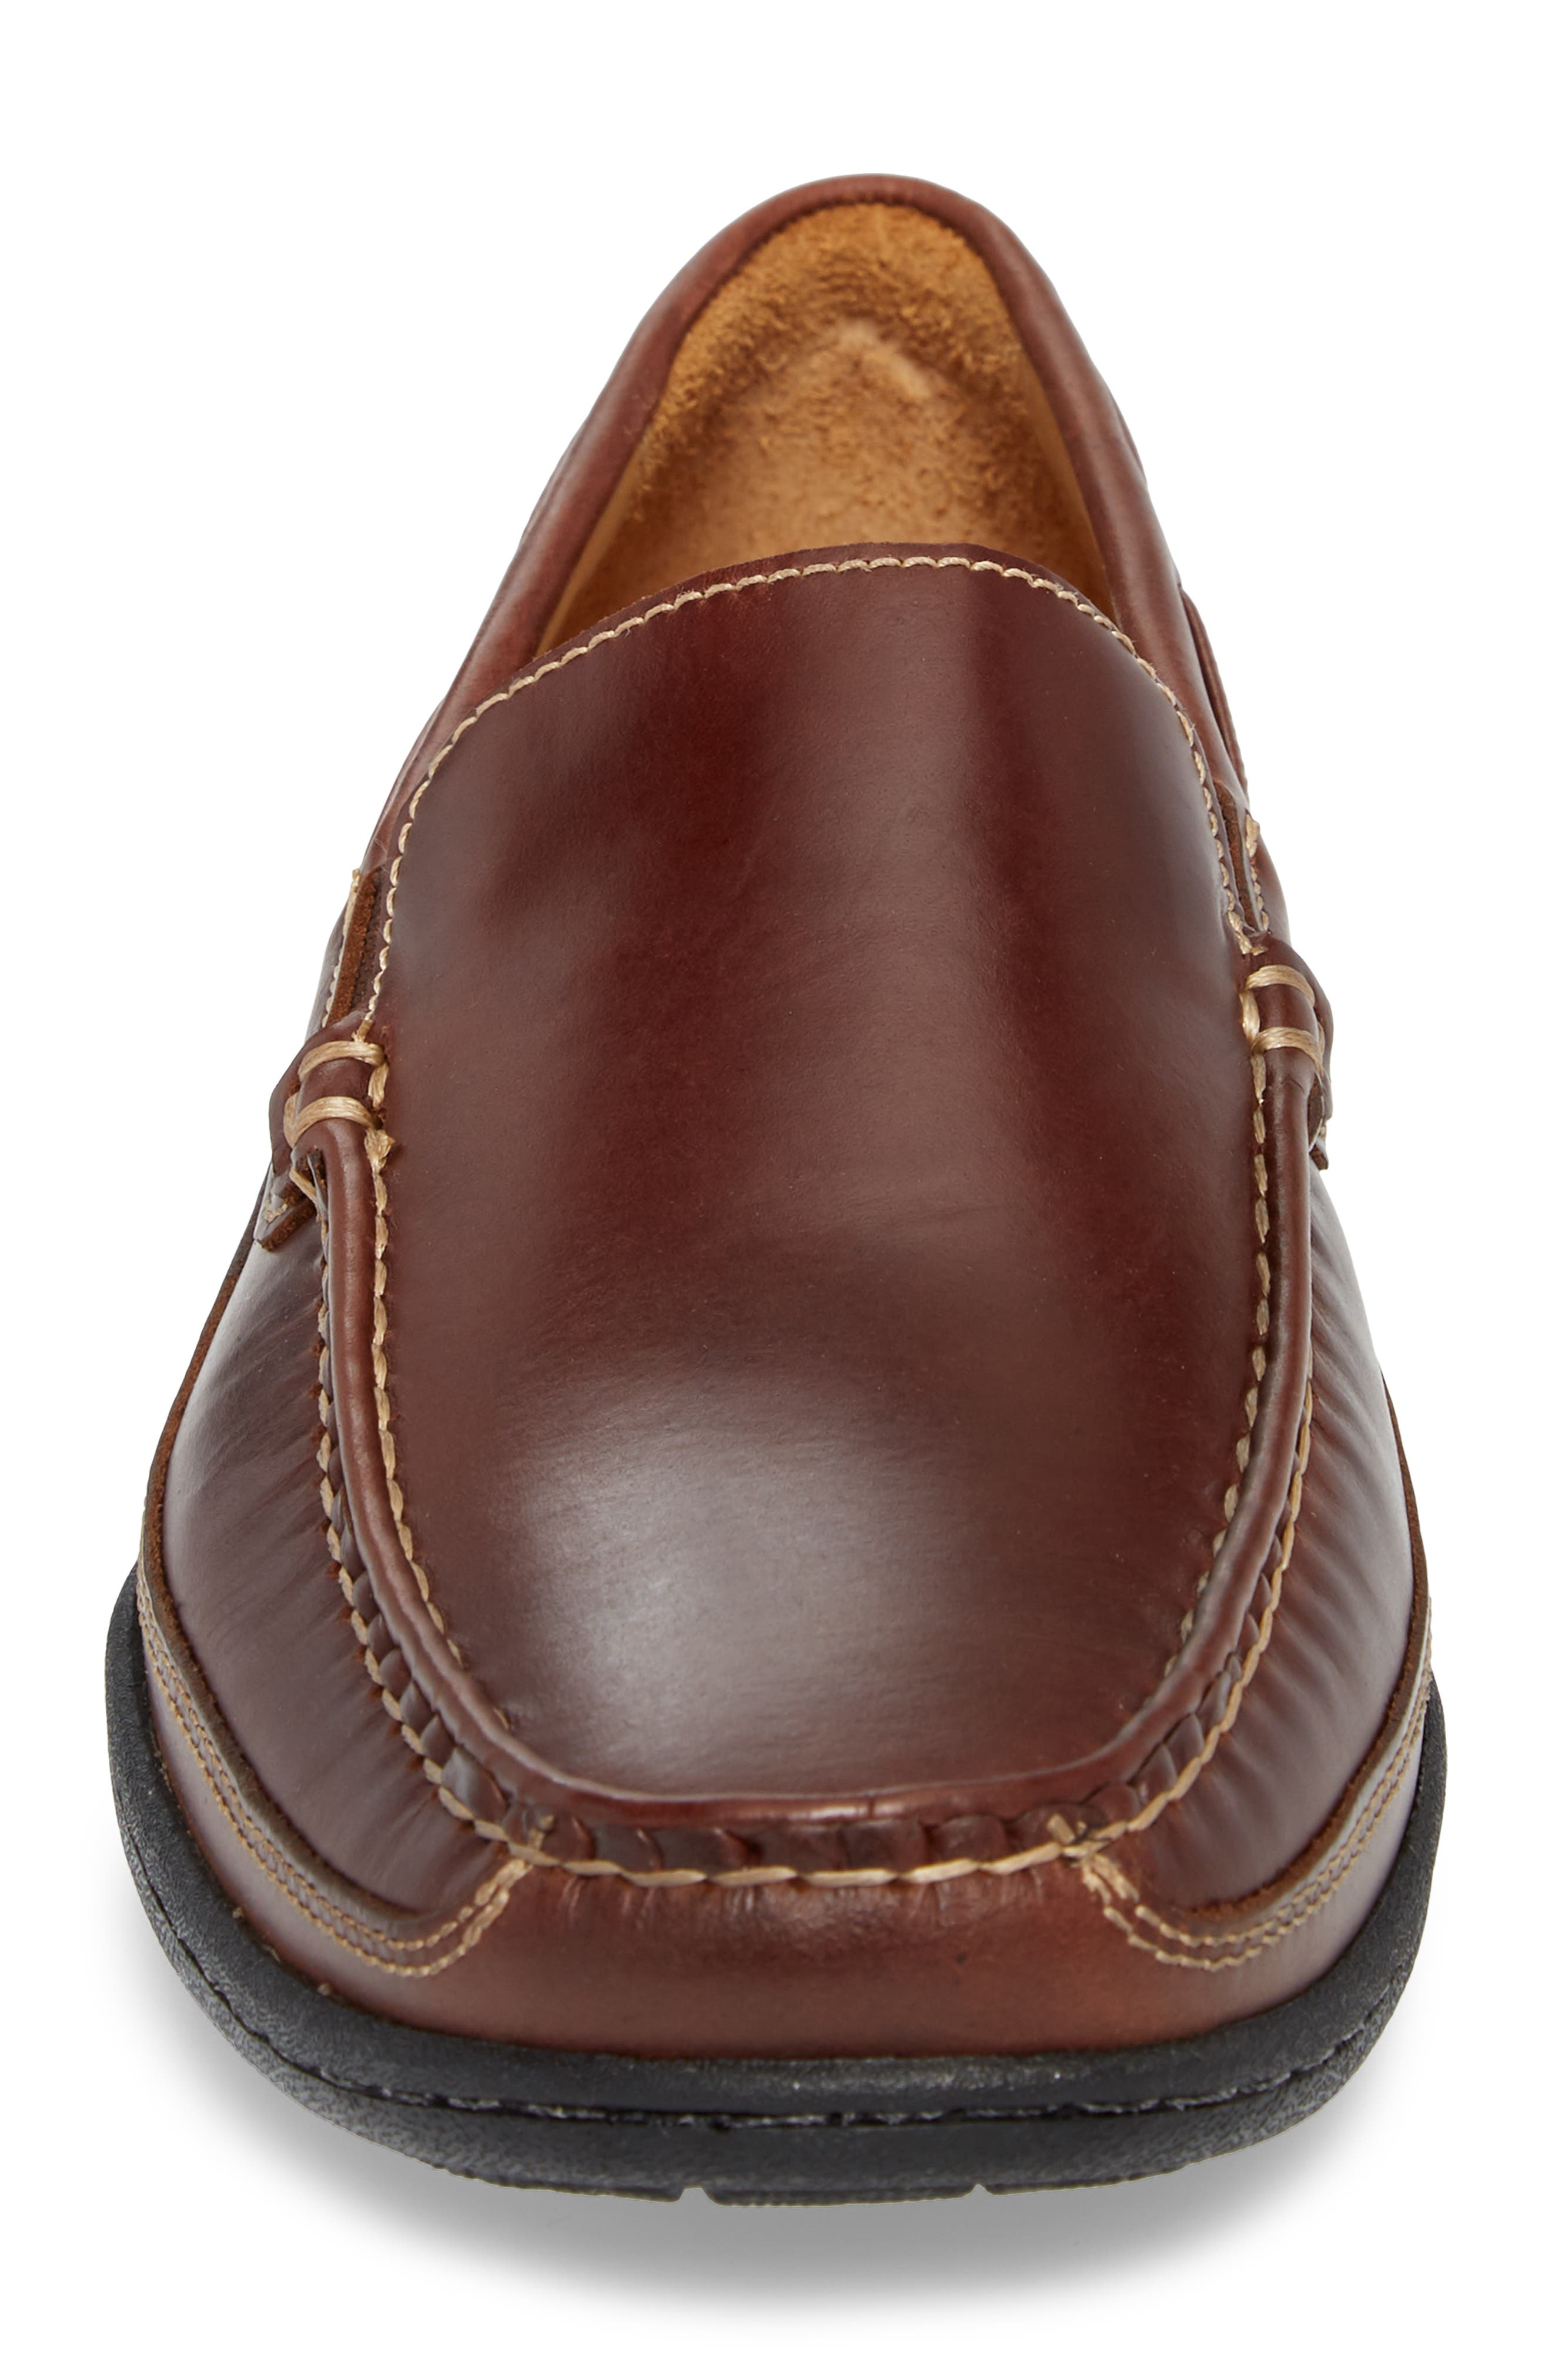 Fowler Moc Toe Loafer,                             Alternate thumbnail 4, color,                             Mahogany Leather